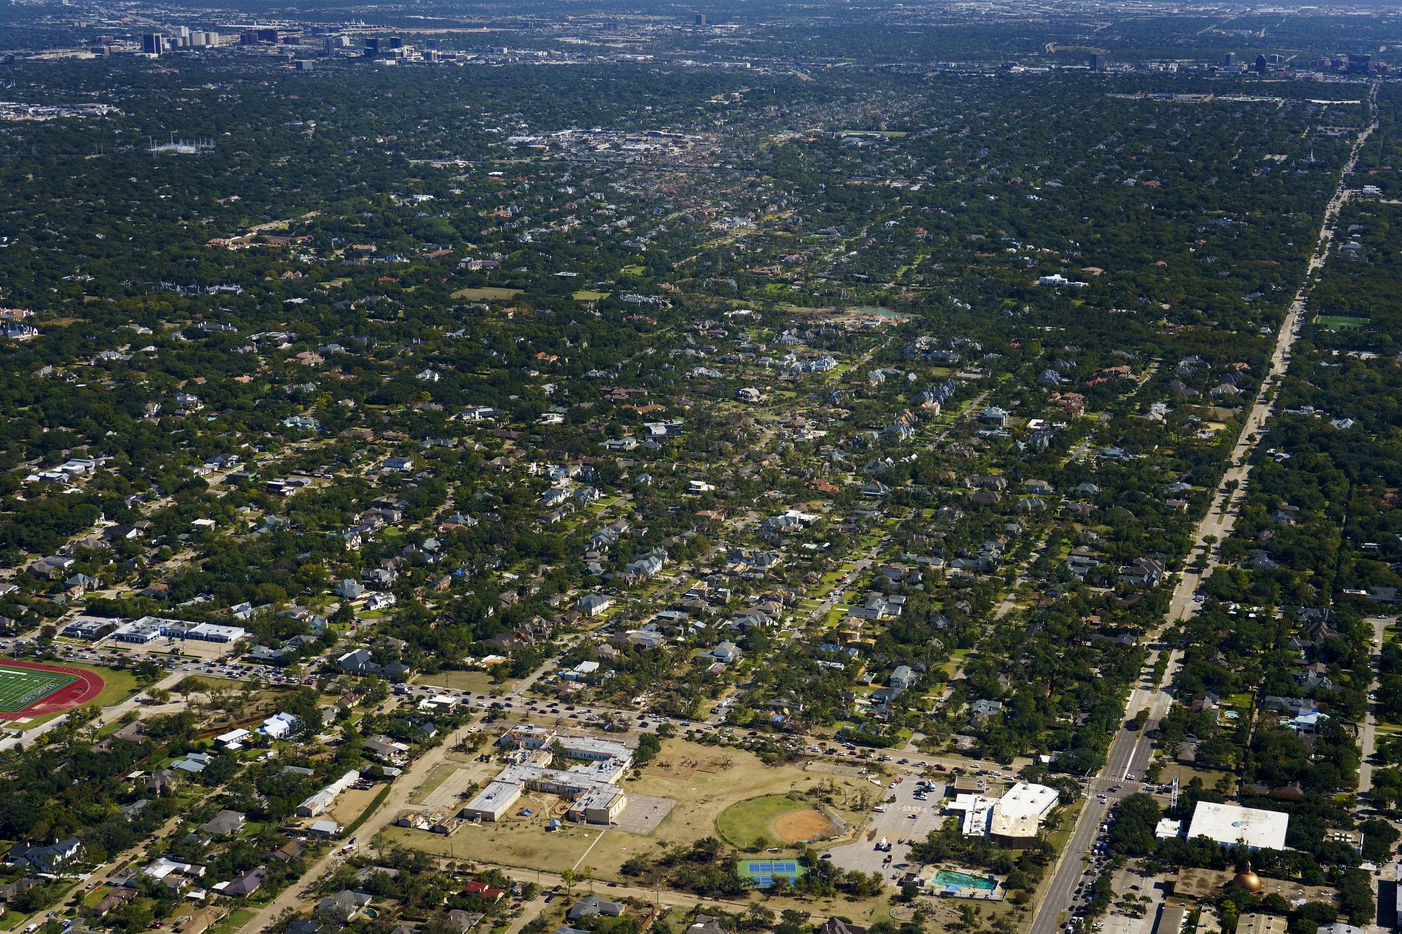 The path of tornado damage is seen stretching northeast from the Walnut Hill Recreation Center (bottom) on Monday, Oct. 21, 2019, in Dallas.